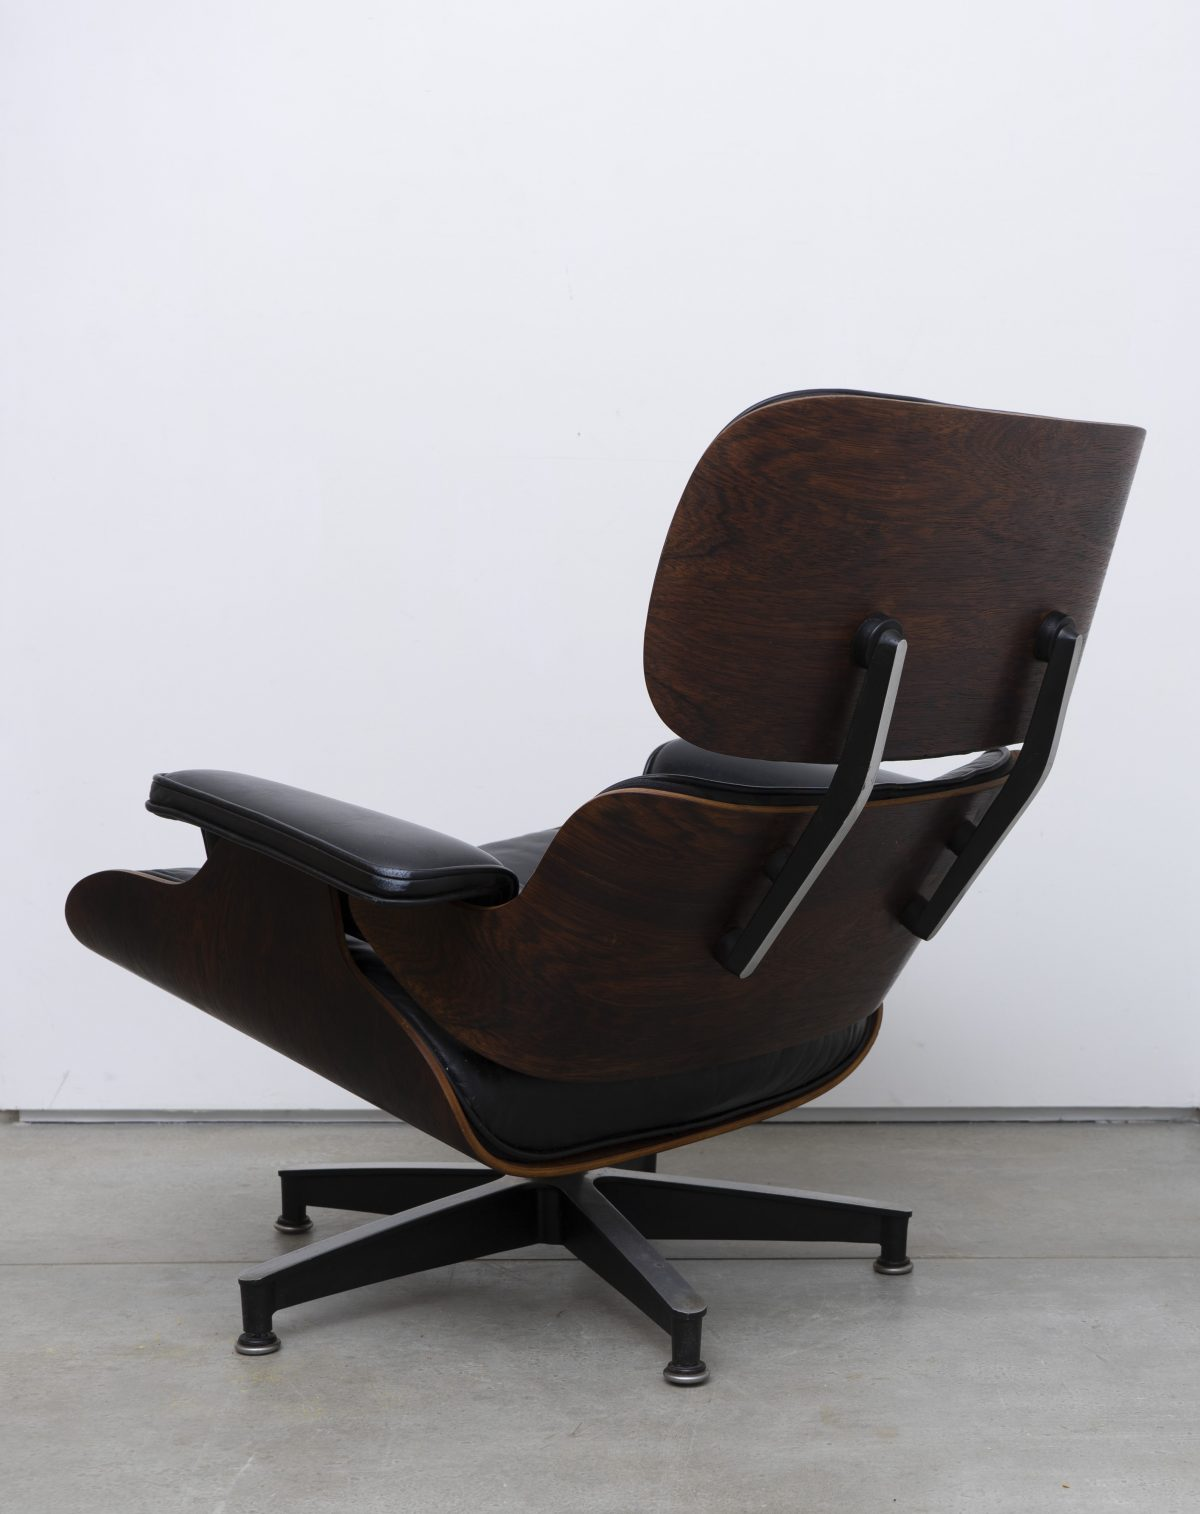 Sensational Charles And Ray Eames For Herman Miller Eames Lounge Chair Machost Co Dining Chair Design Ideas Machostcouk